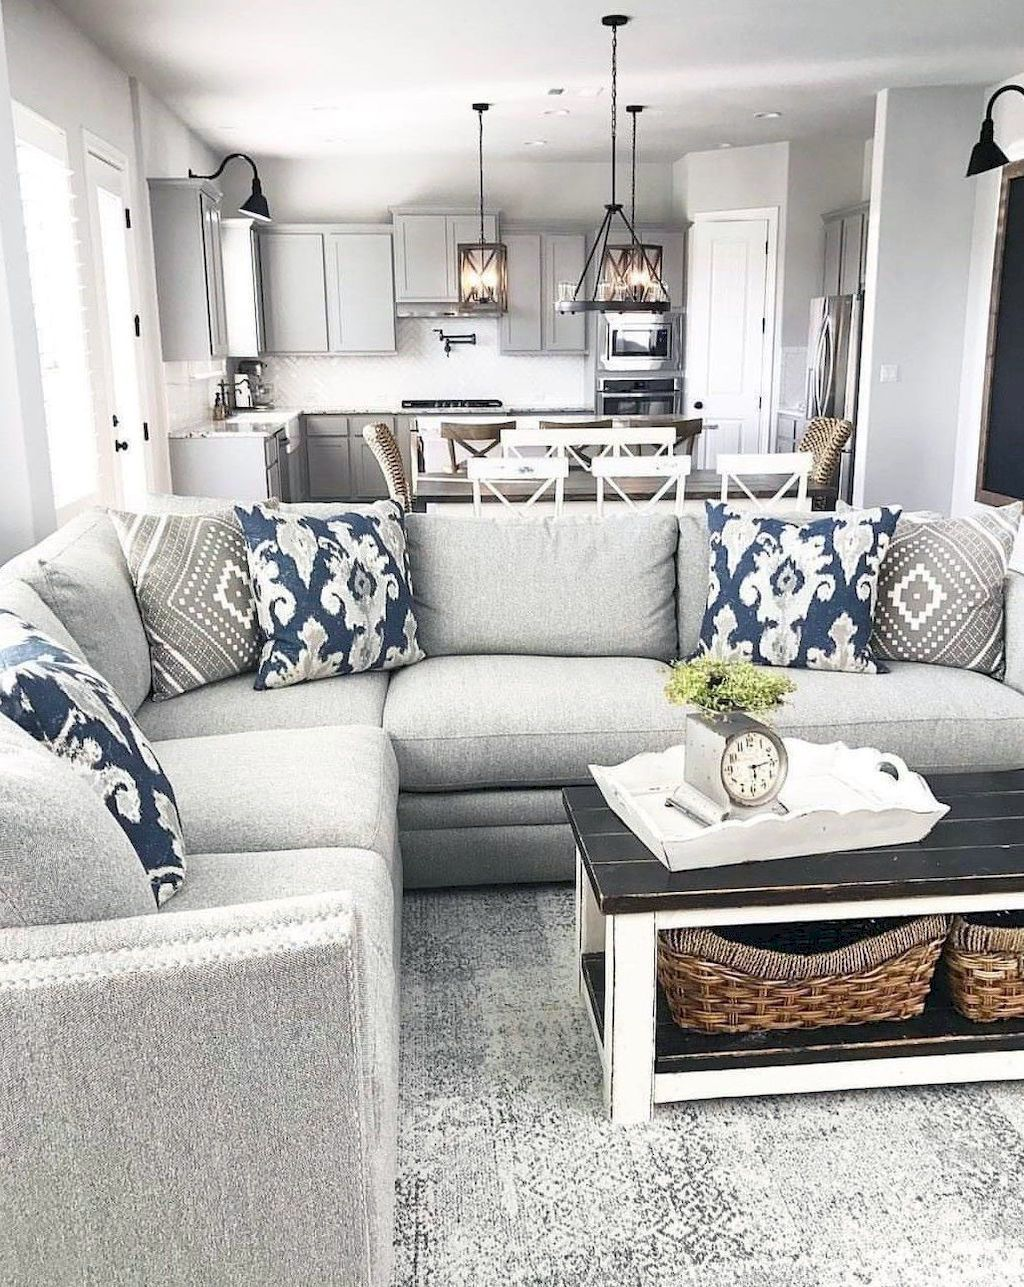 The Beginner S Guide To Decorating Living Rooms With Images Small Living Room Ideas With Tv Corner Fireplace Living Room Living Room Arrangements #small #living #room #couch #ideas